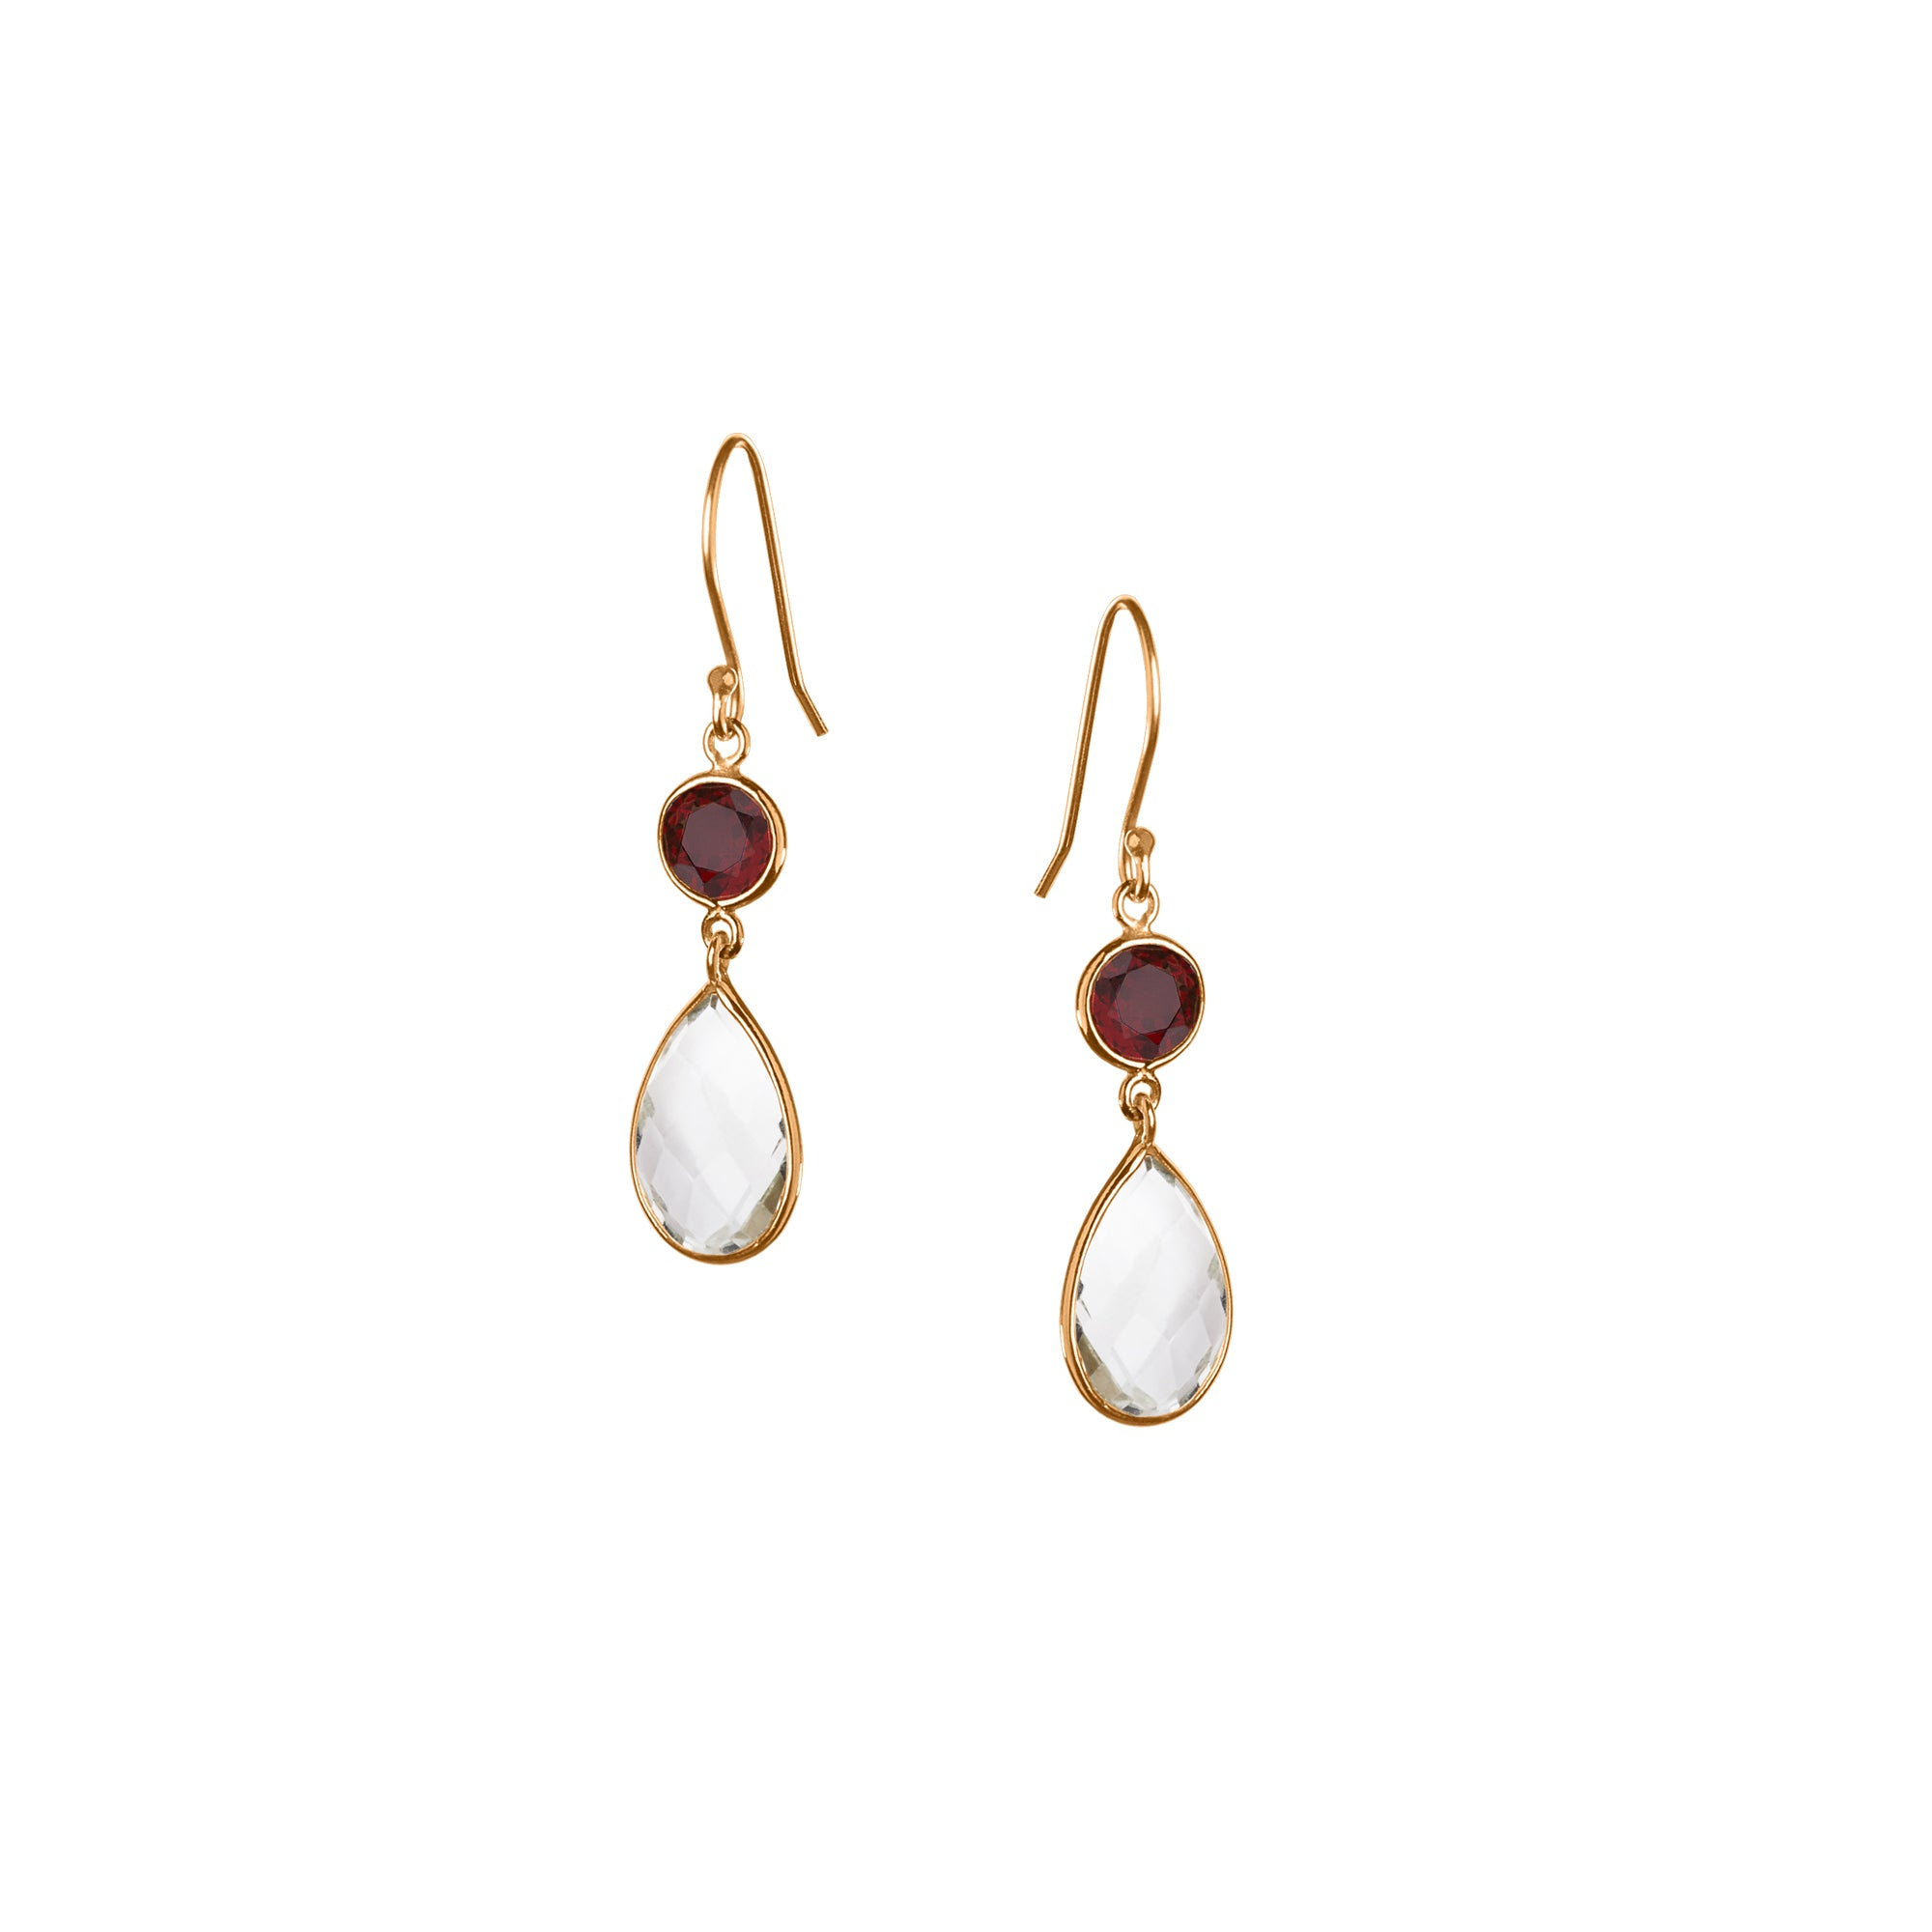 Small Apple and Pears Drop Earring in Gold with Garnet and Amethyst